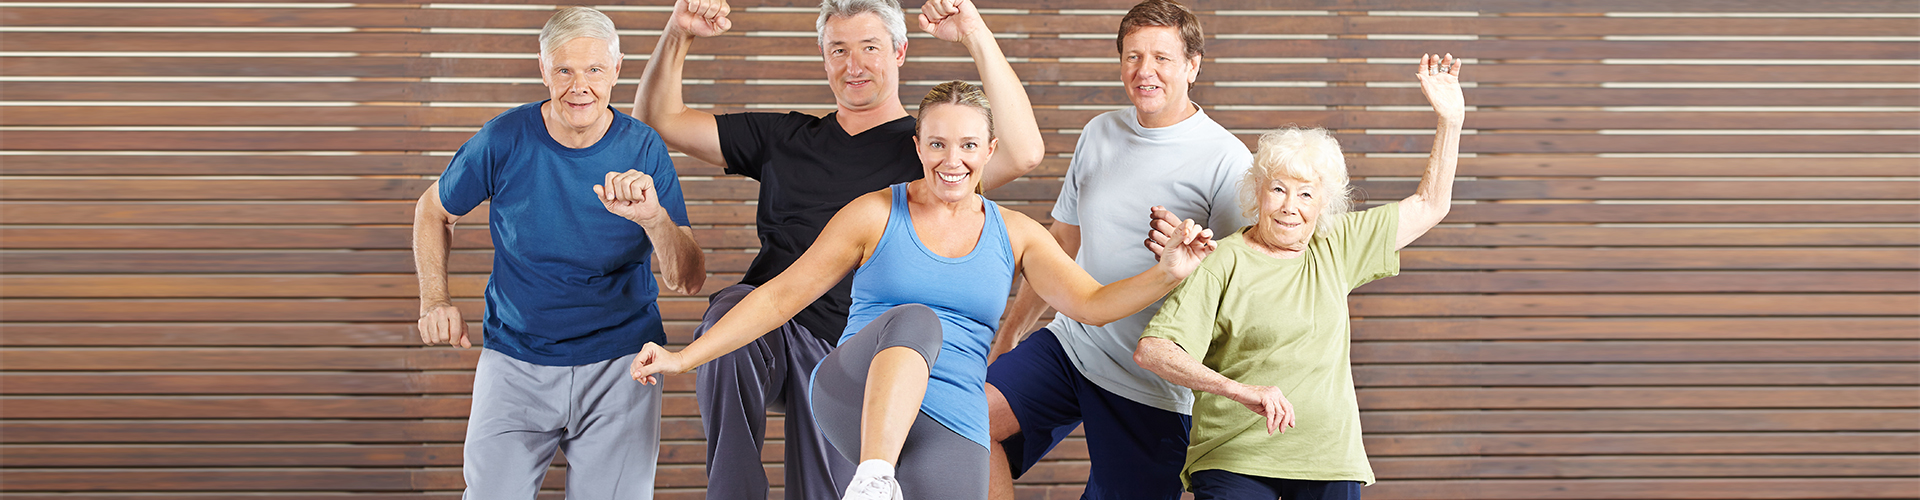 adults and elder people doing exercise